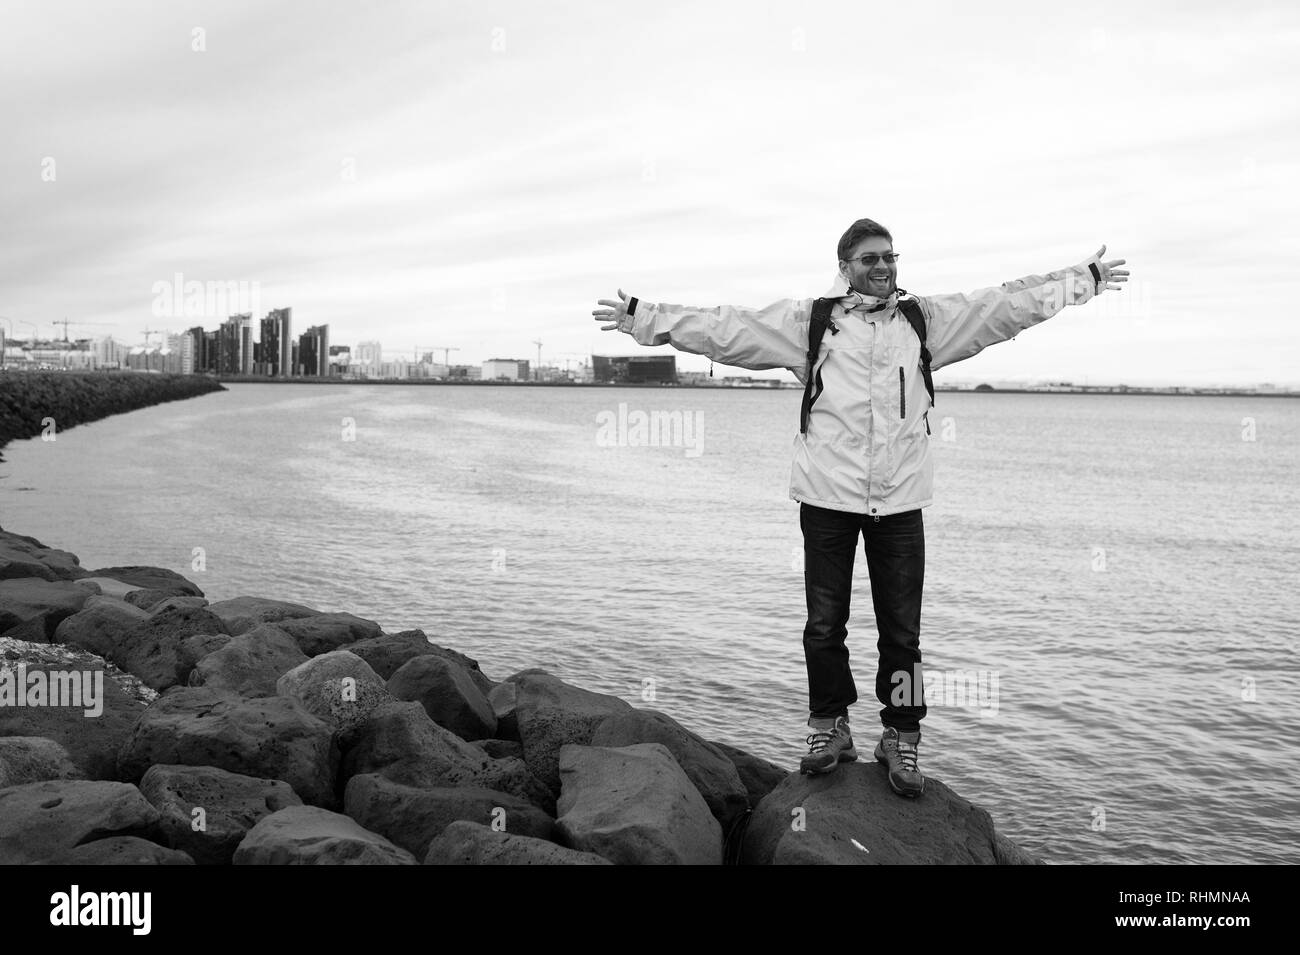 Man tourist wear warm protective clothes for cold climate conditions. Tourist well equipment ready explore scandinavian or nordic country. Tourist traveller concept. Tourist on sea background. - Stock Image